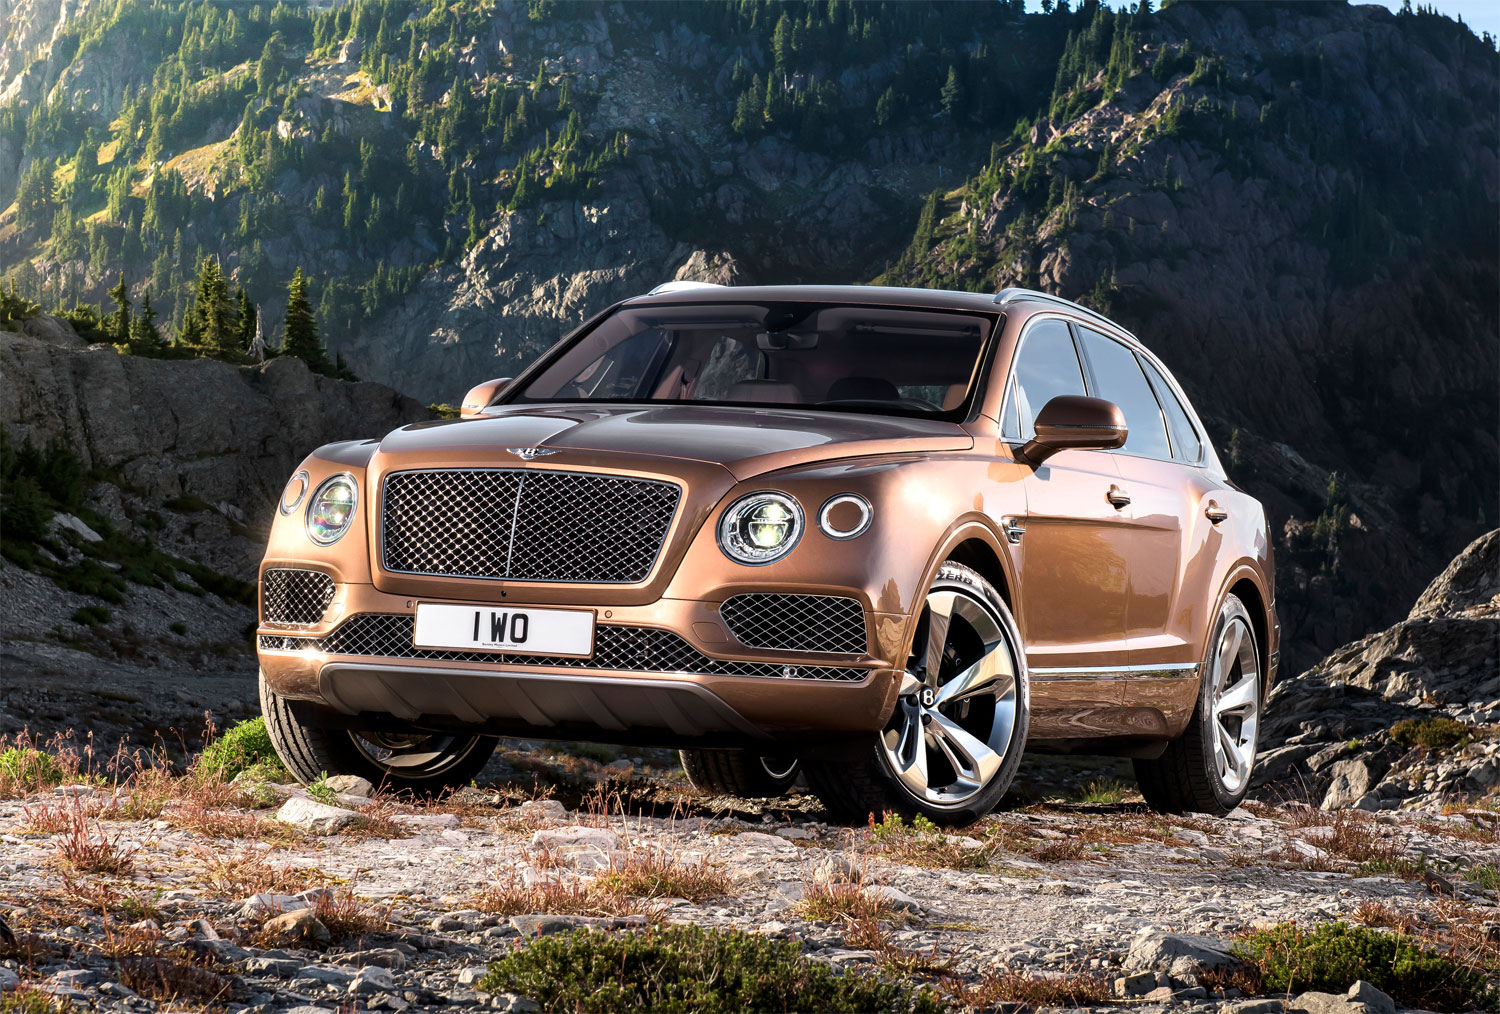 The extraordinary Bentley Bentayga